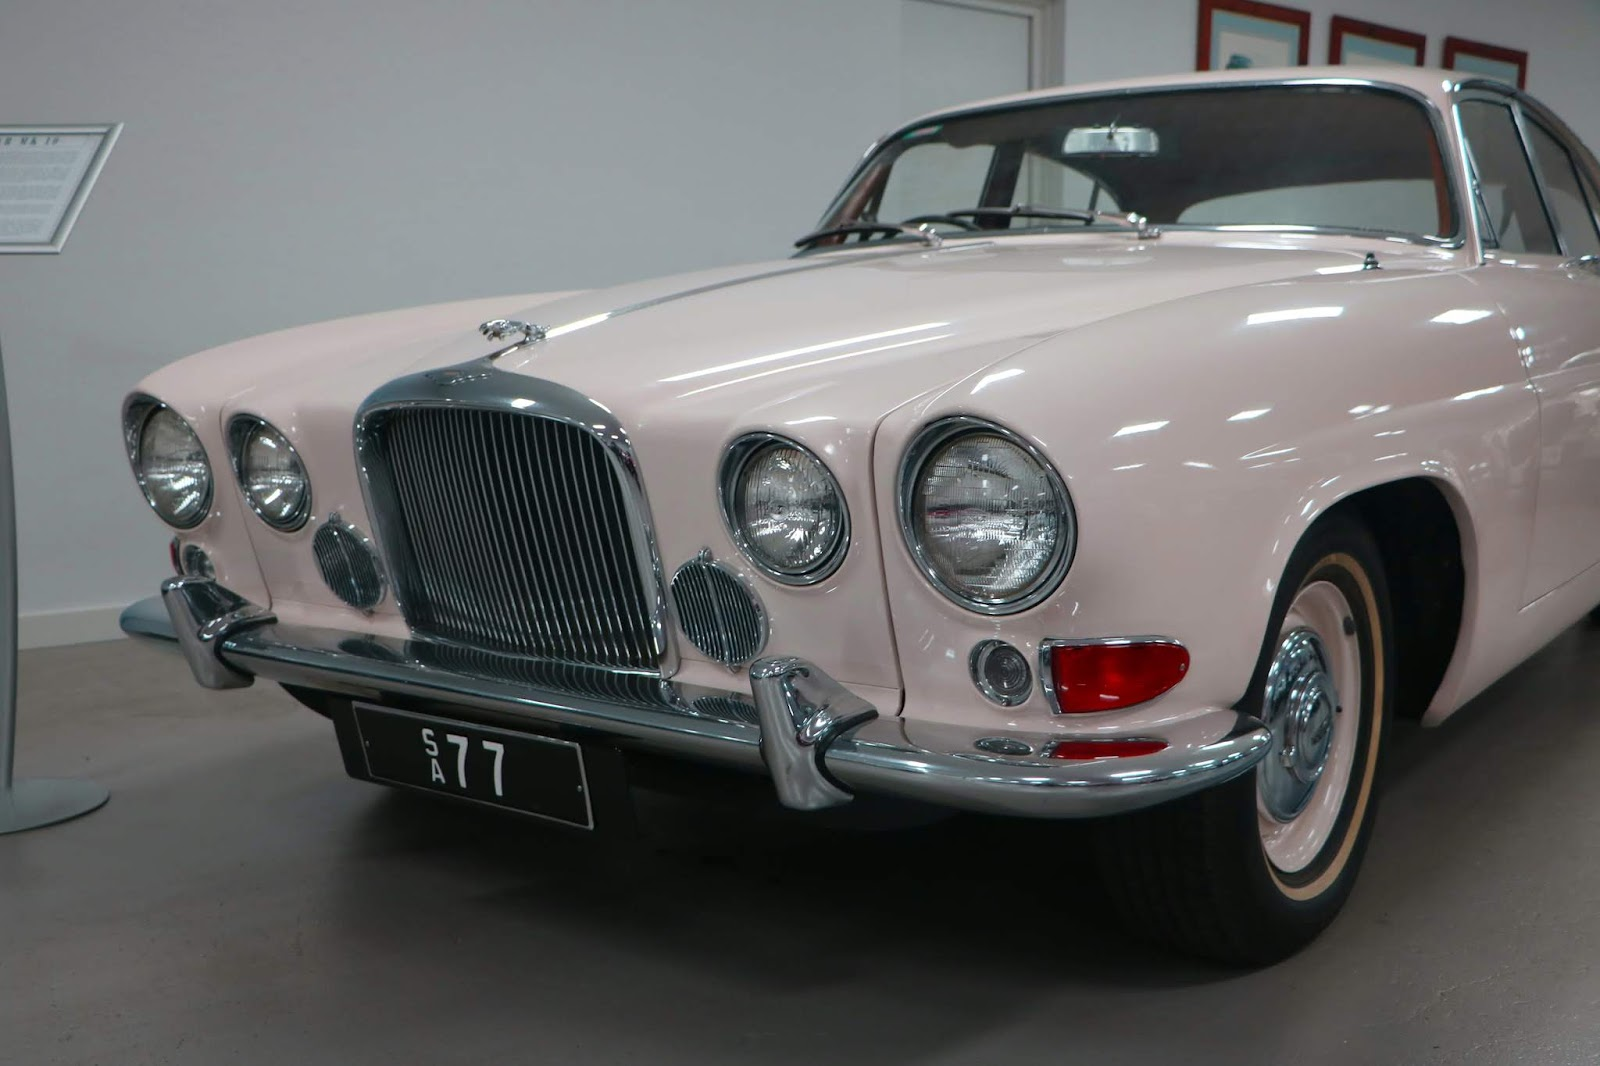 Carl_Lindner_Collection - 1963 Jaguar Mk 10 02.JPG